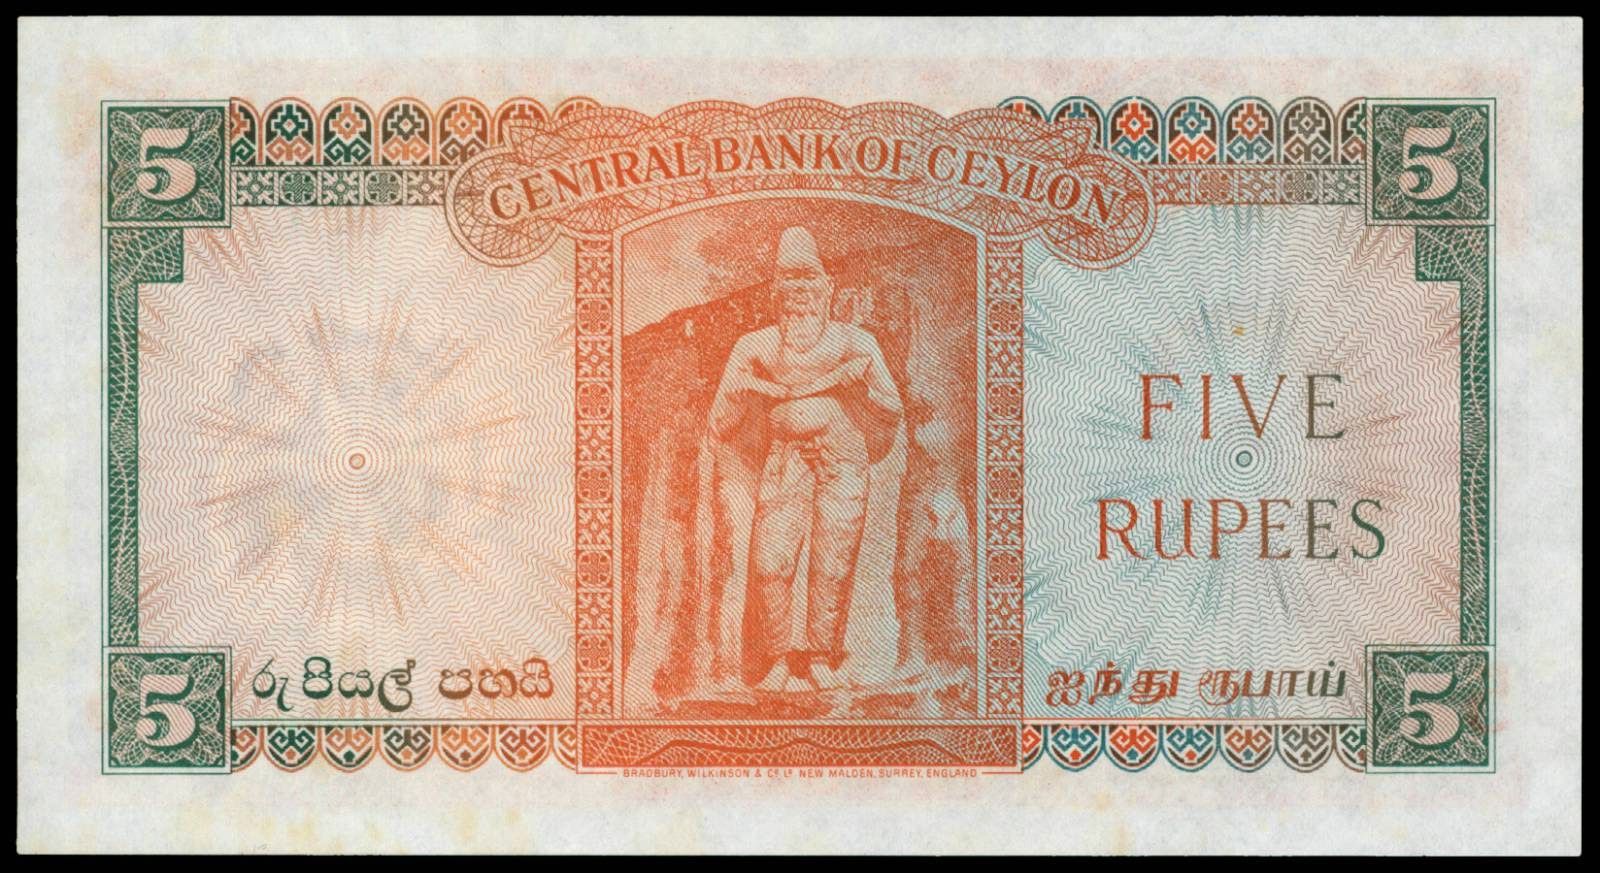 Ceylon paper money currency 5 Rupees banknote 1954